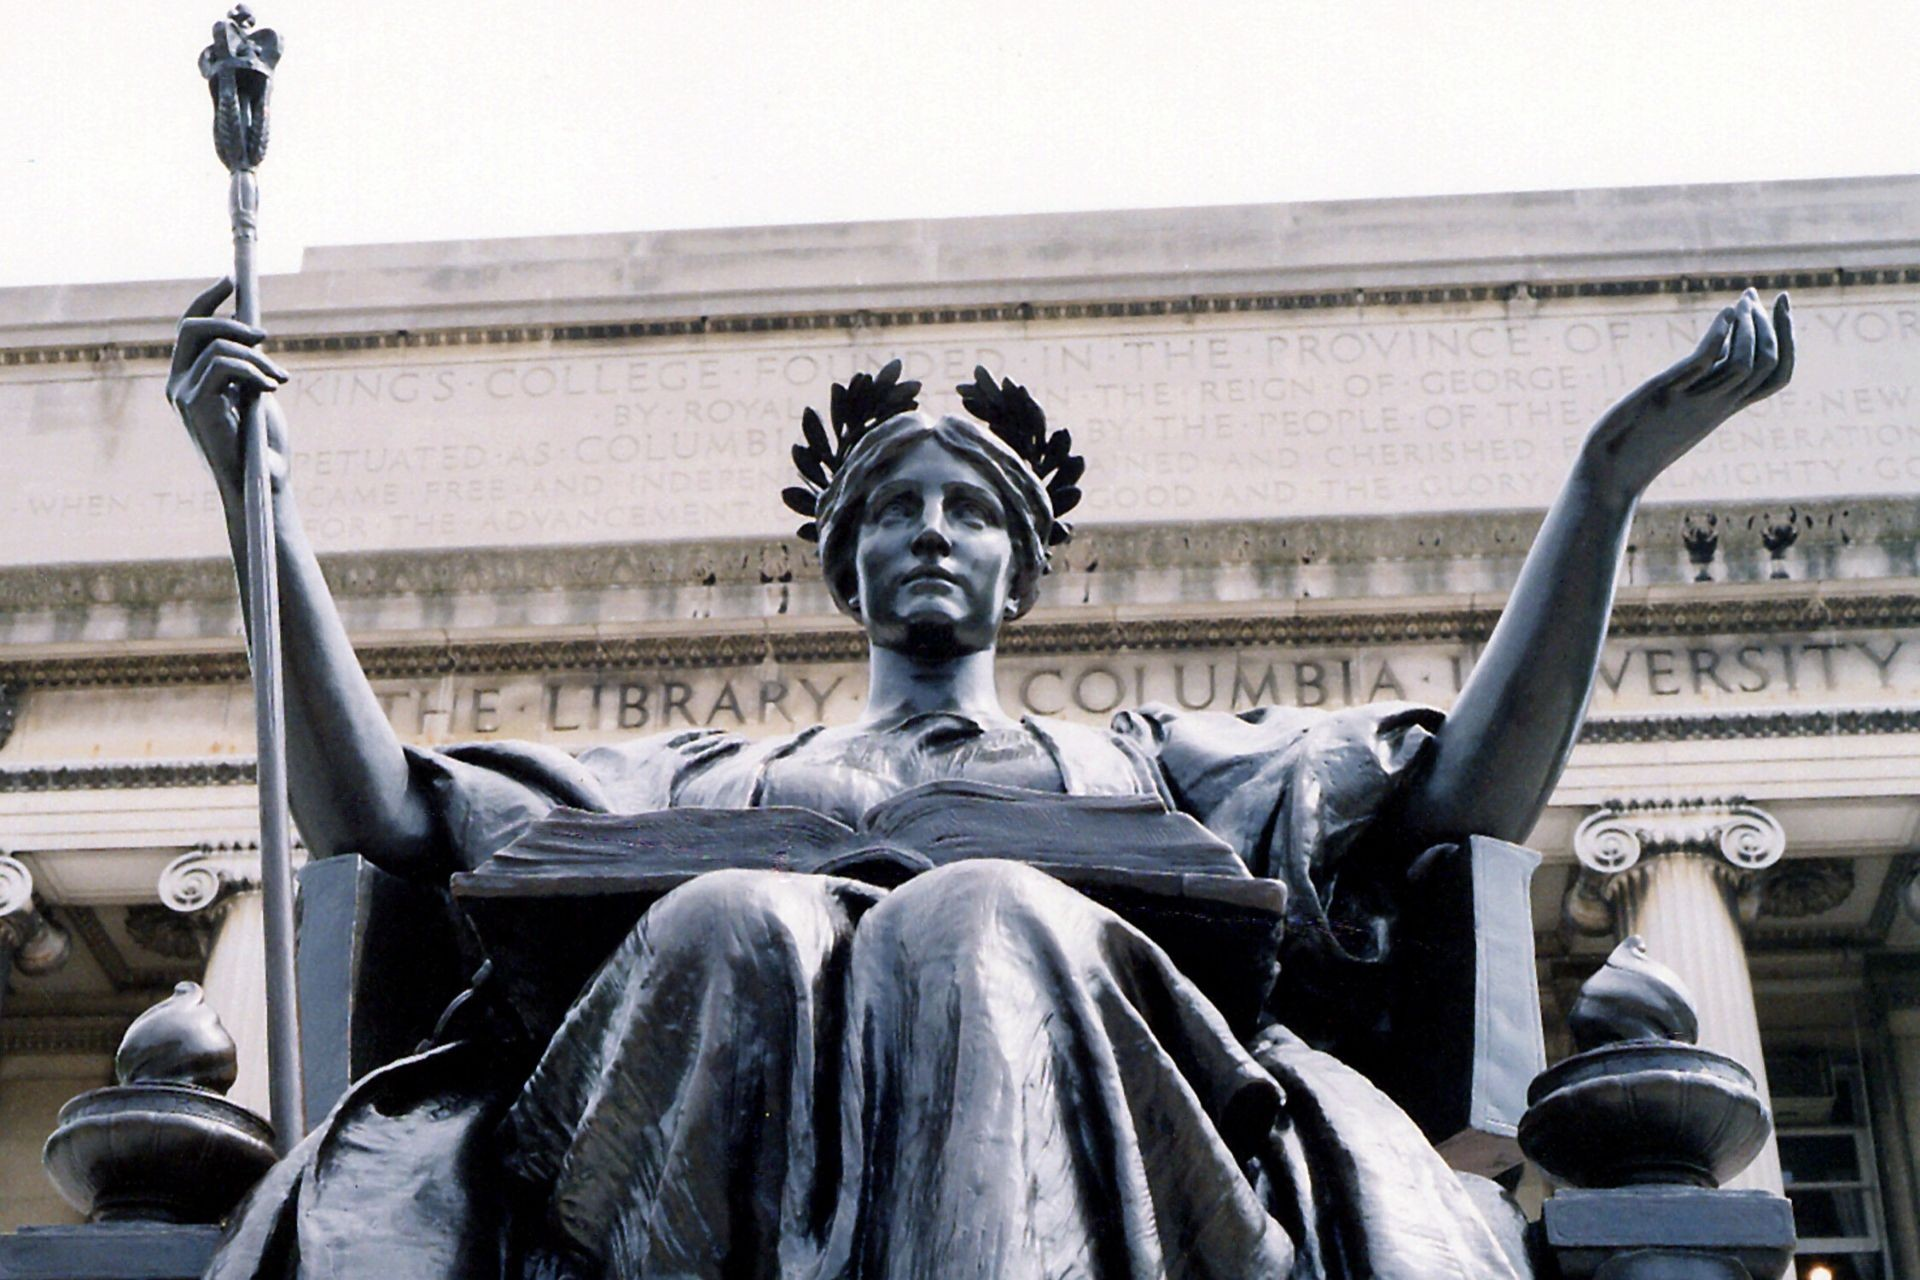 Alma Mater statue at Columbia University